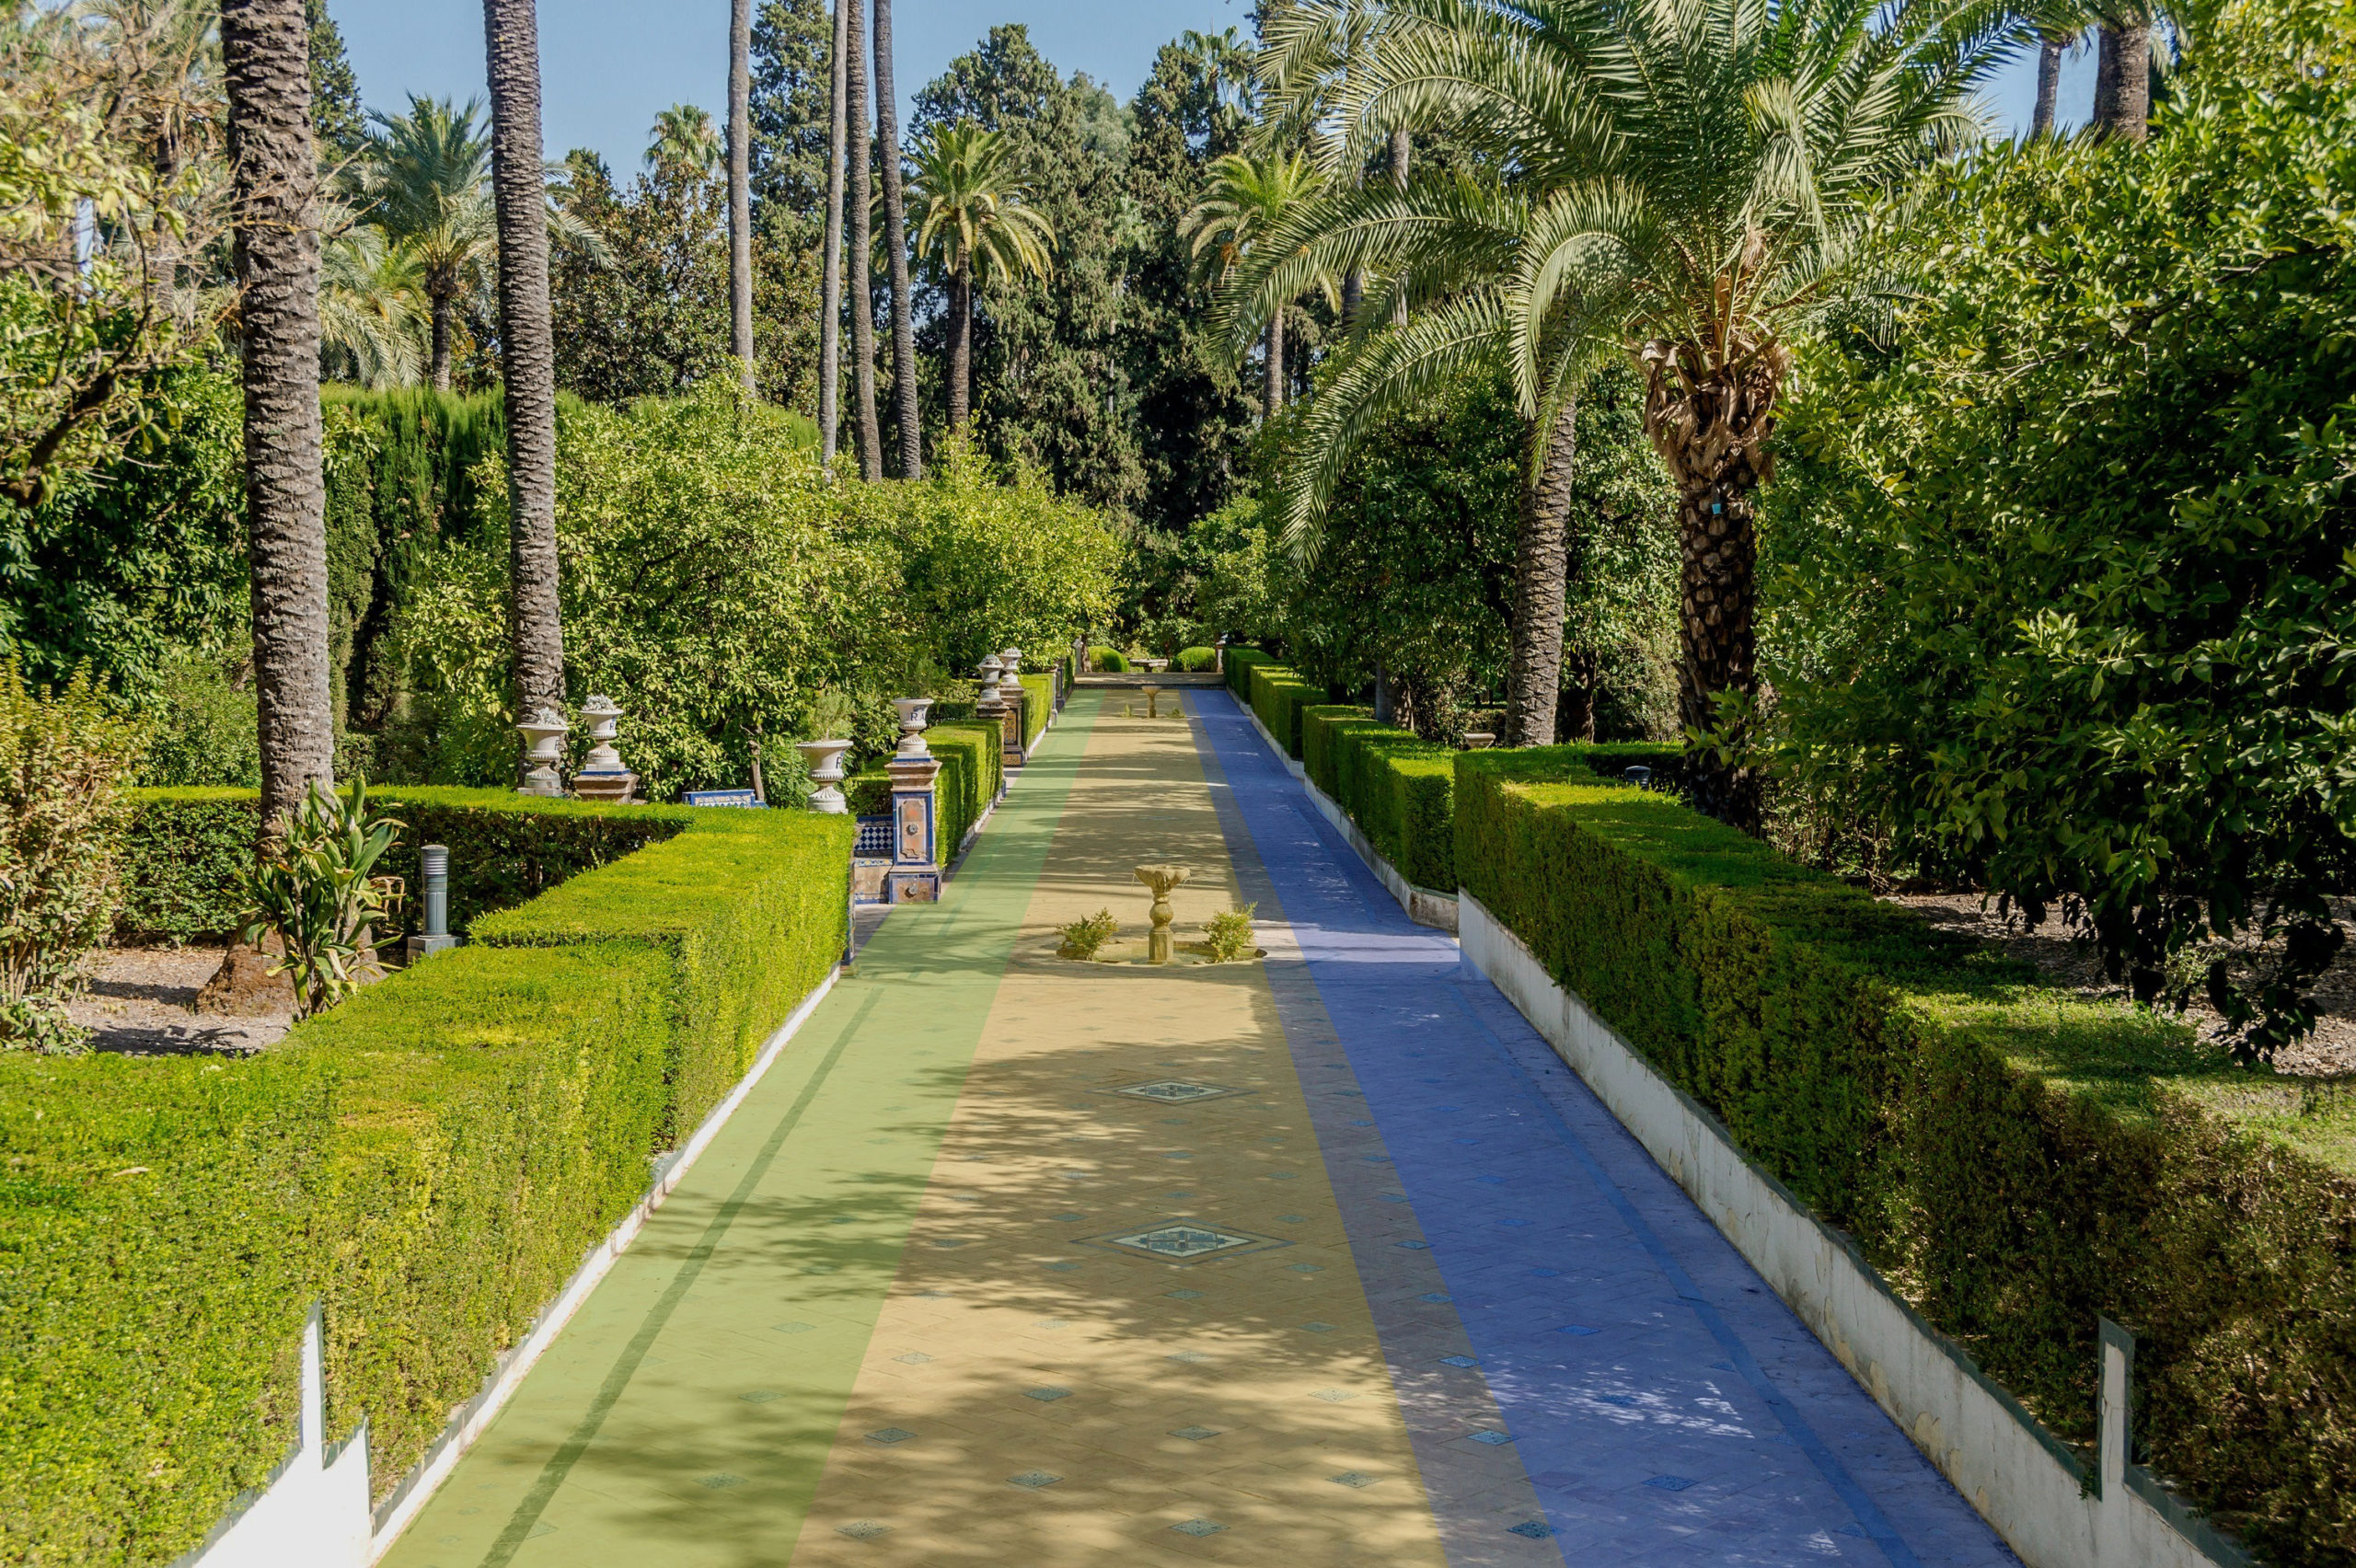 garden with path with ambient and reflected light influences marked